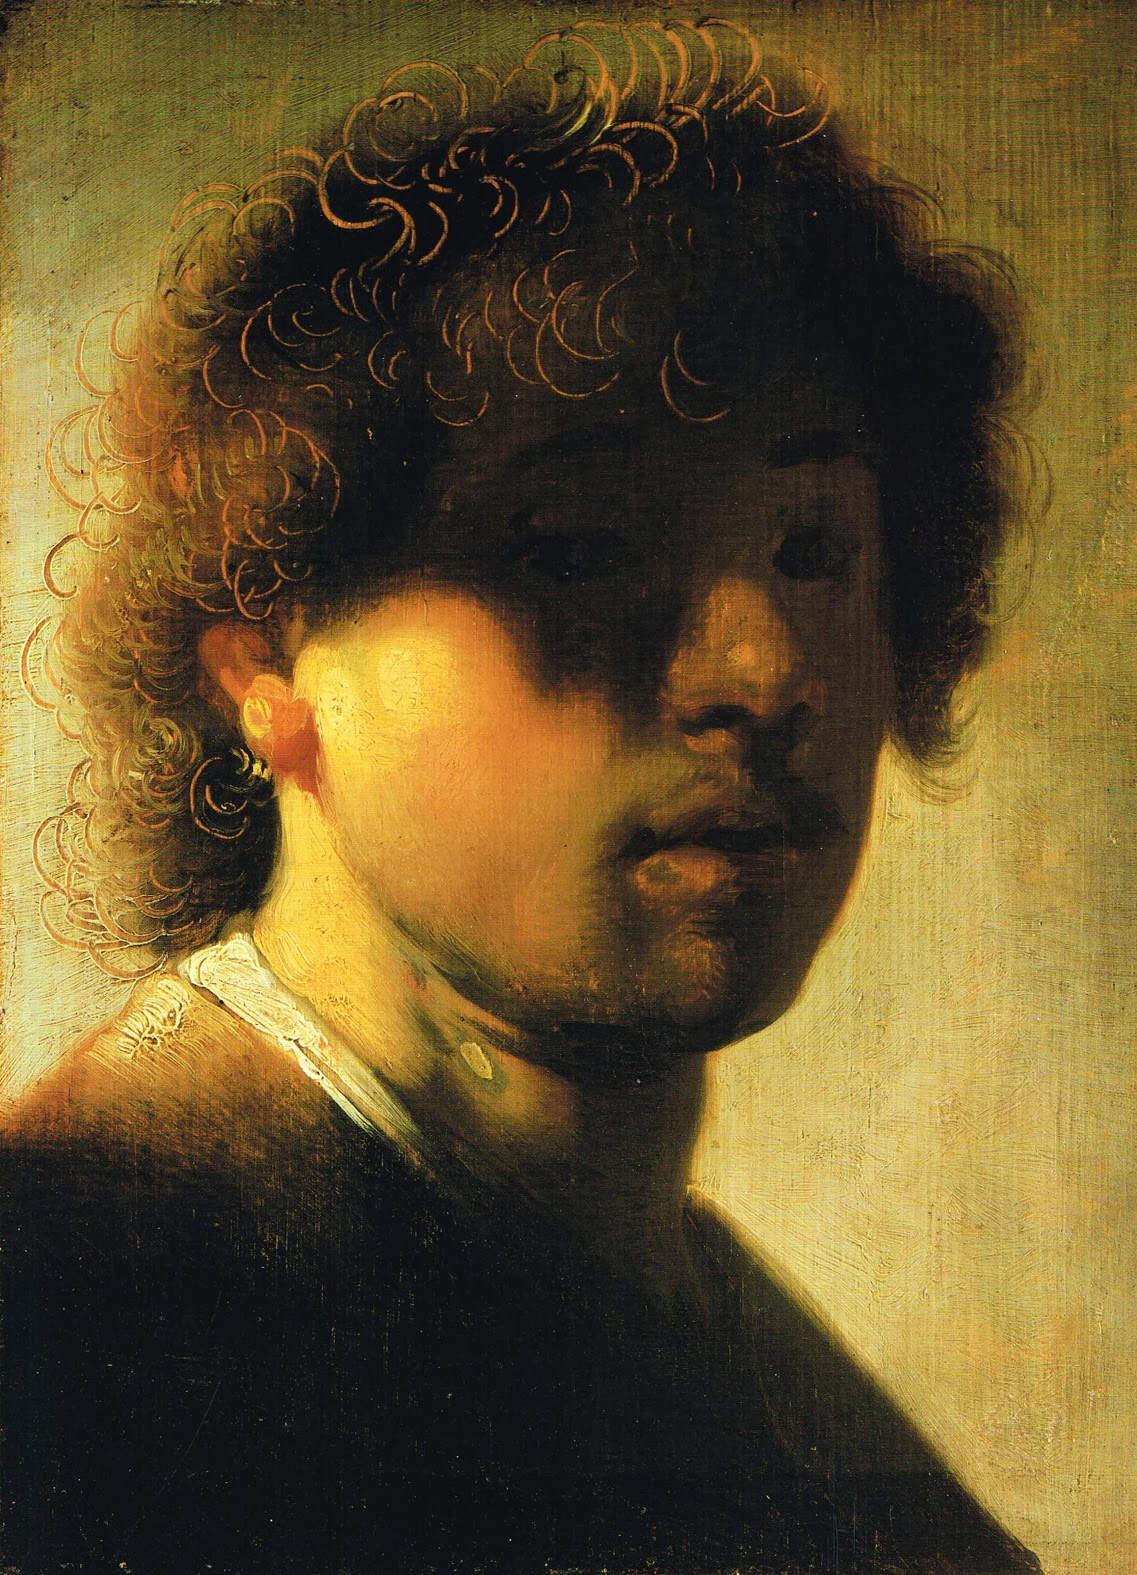 rembrandt self portrait essay Rembrandt (1606-1669) rembrandt van rijn was born in leiden,  rembrandt van rijn, self-portrait with mouth open,  a group portrait of one of the city's militia.